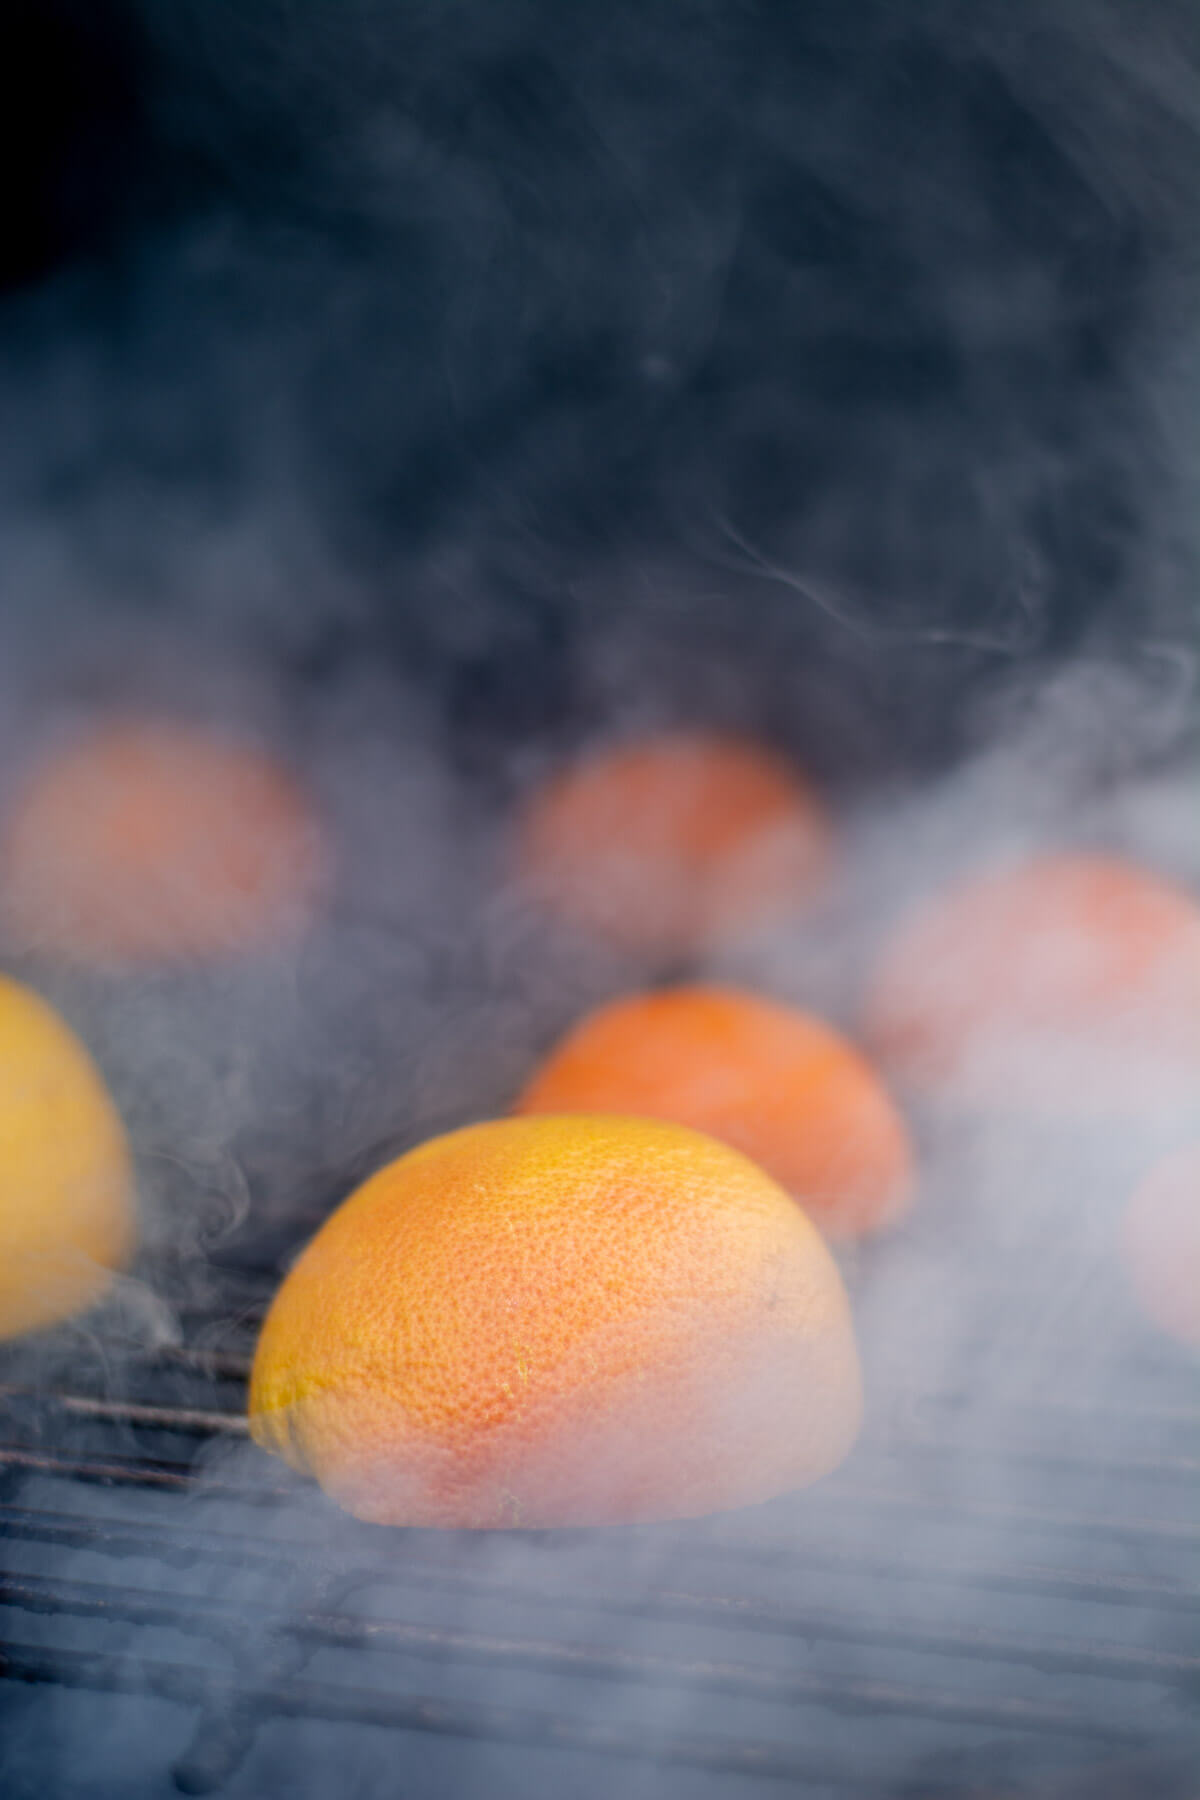 sliced grapefruit and oranges on the grill with smoke billowing.